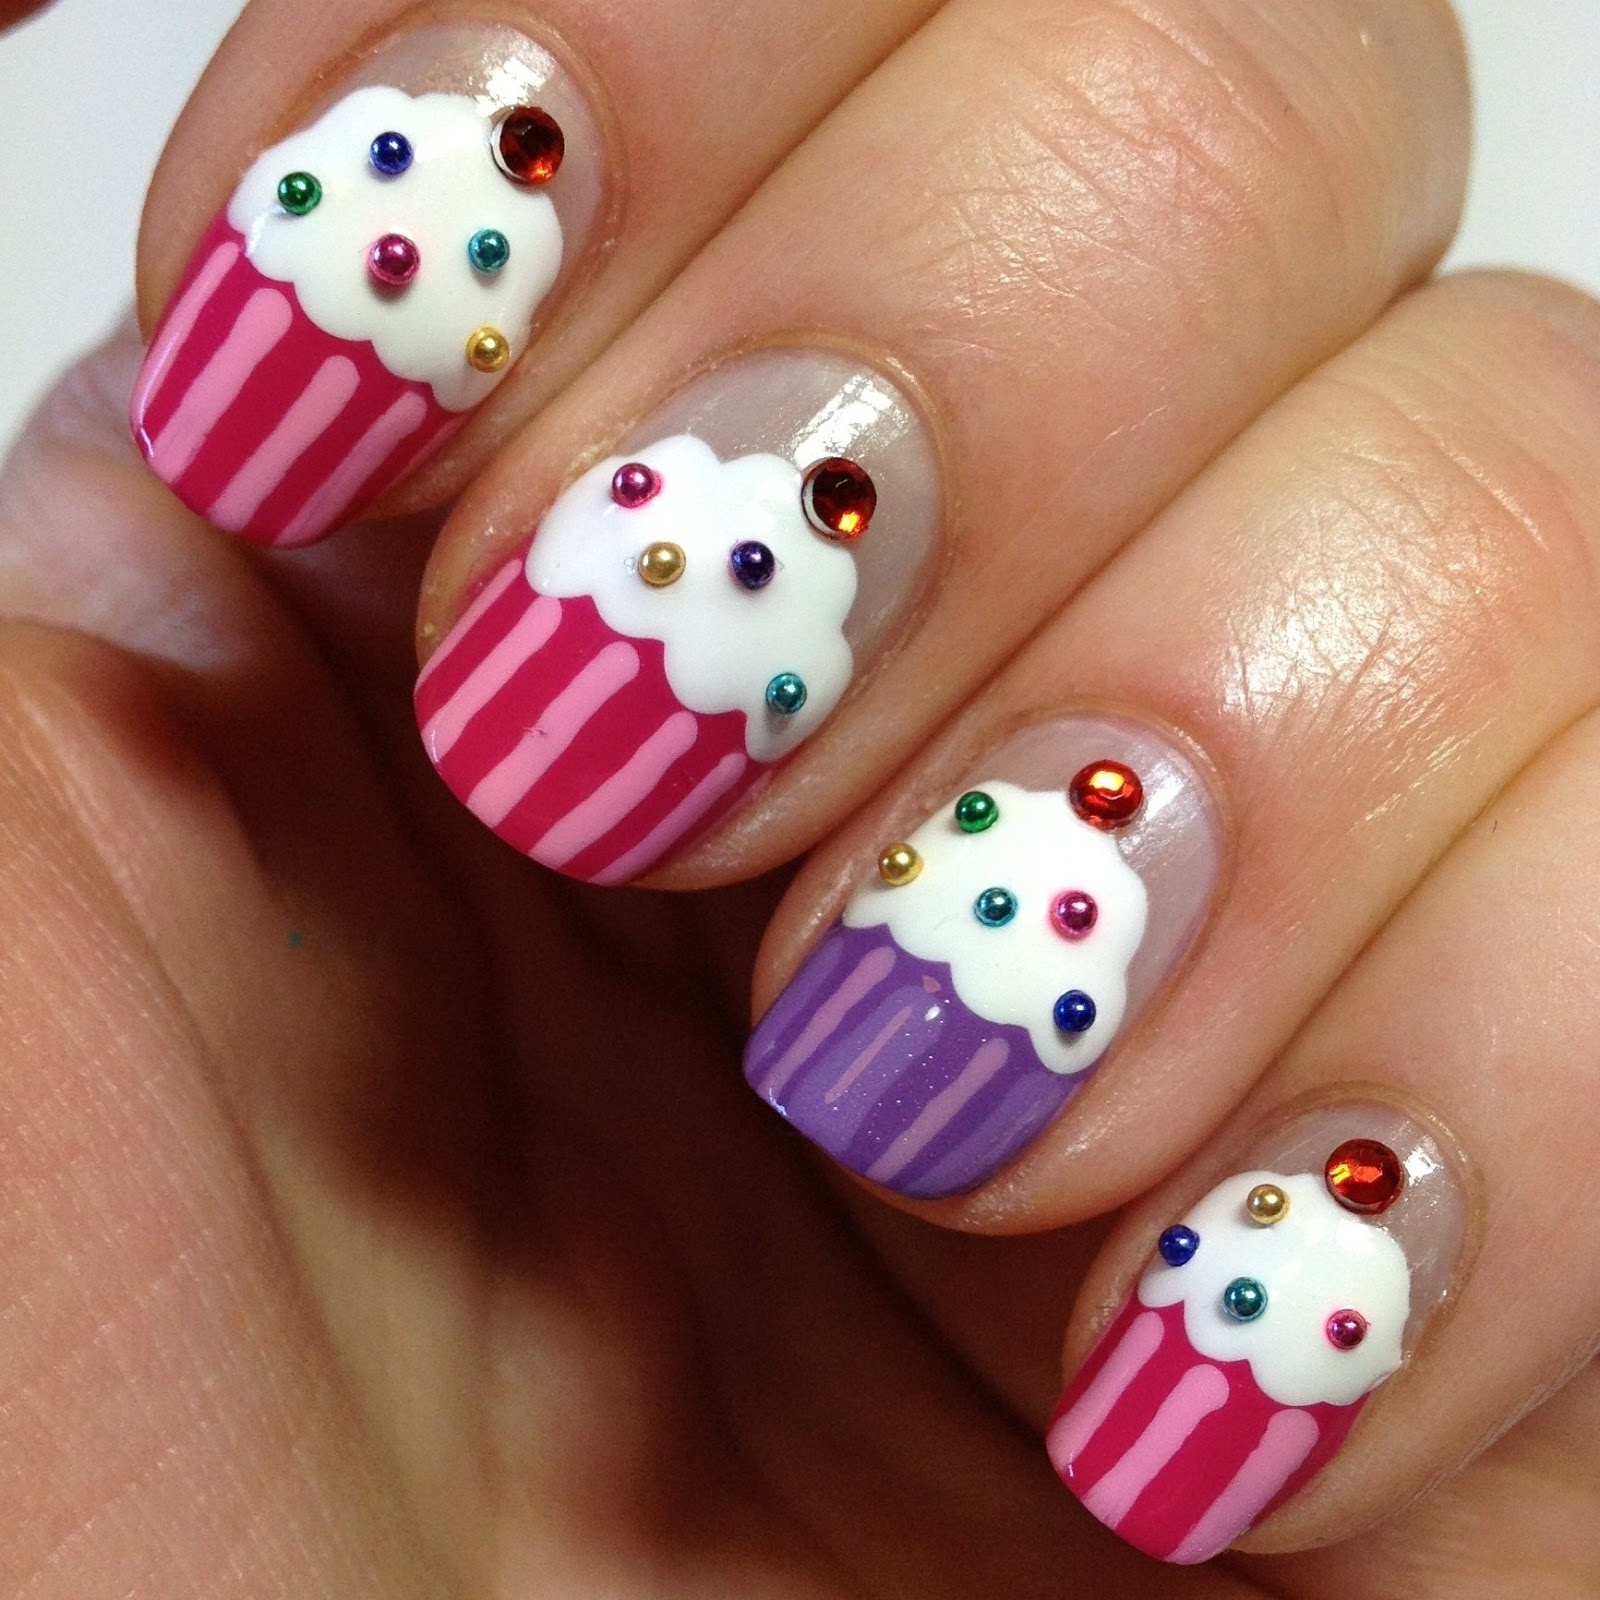 30 Awesome Cupcake Nail Art Designs 2015/16 30 Awesome Cupcake Nail Art Designs 2015/16 cupcake nail art design 28